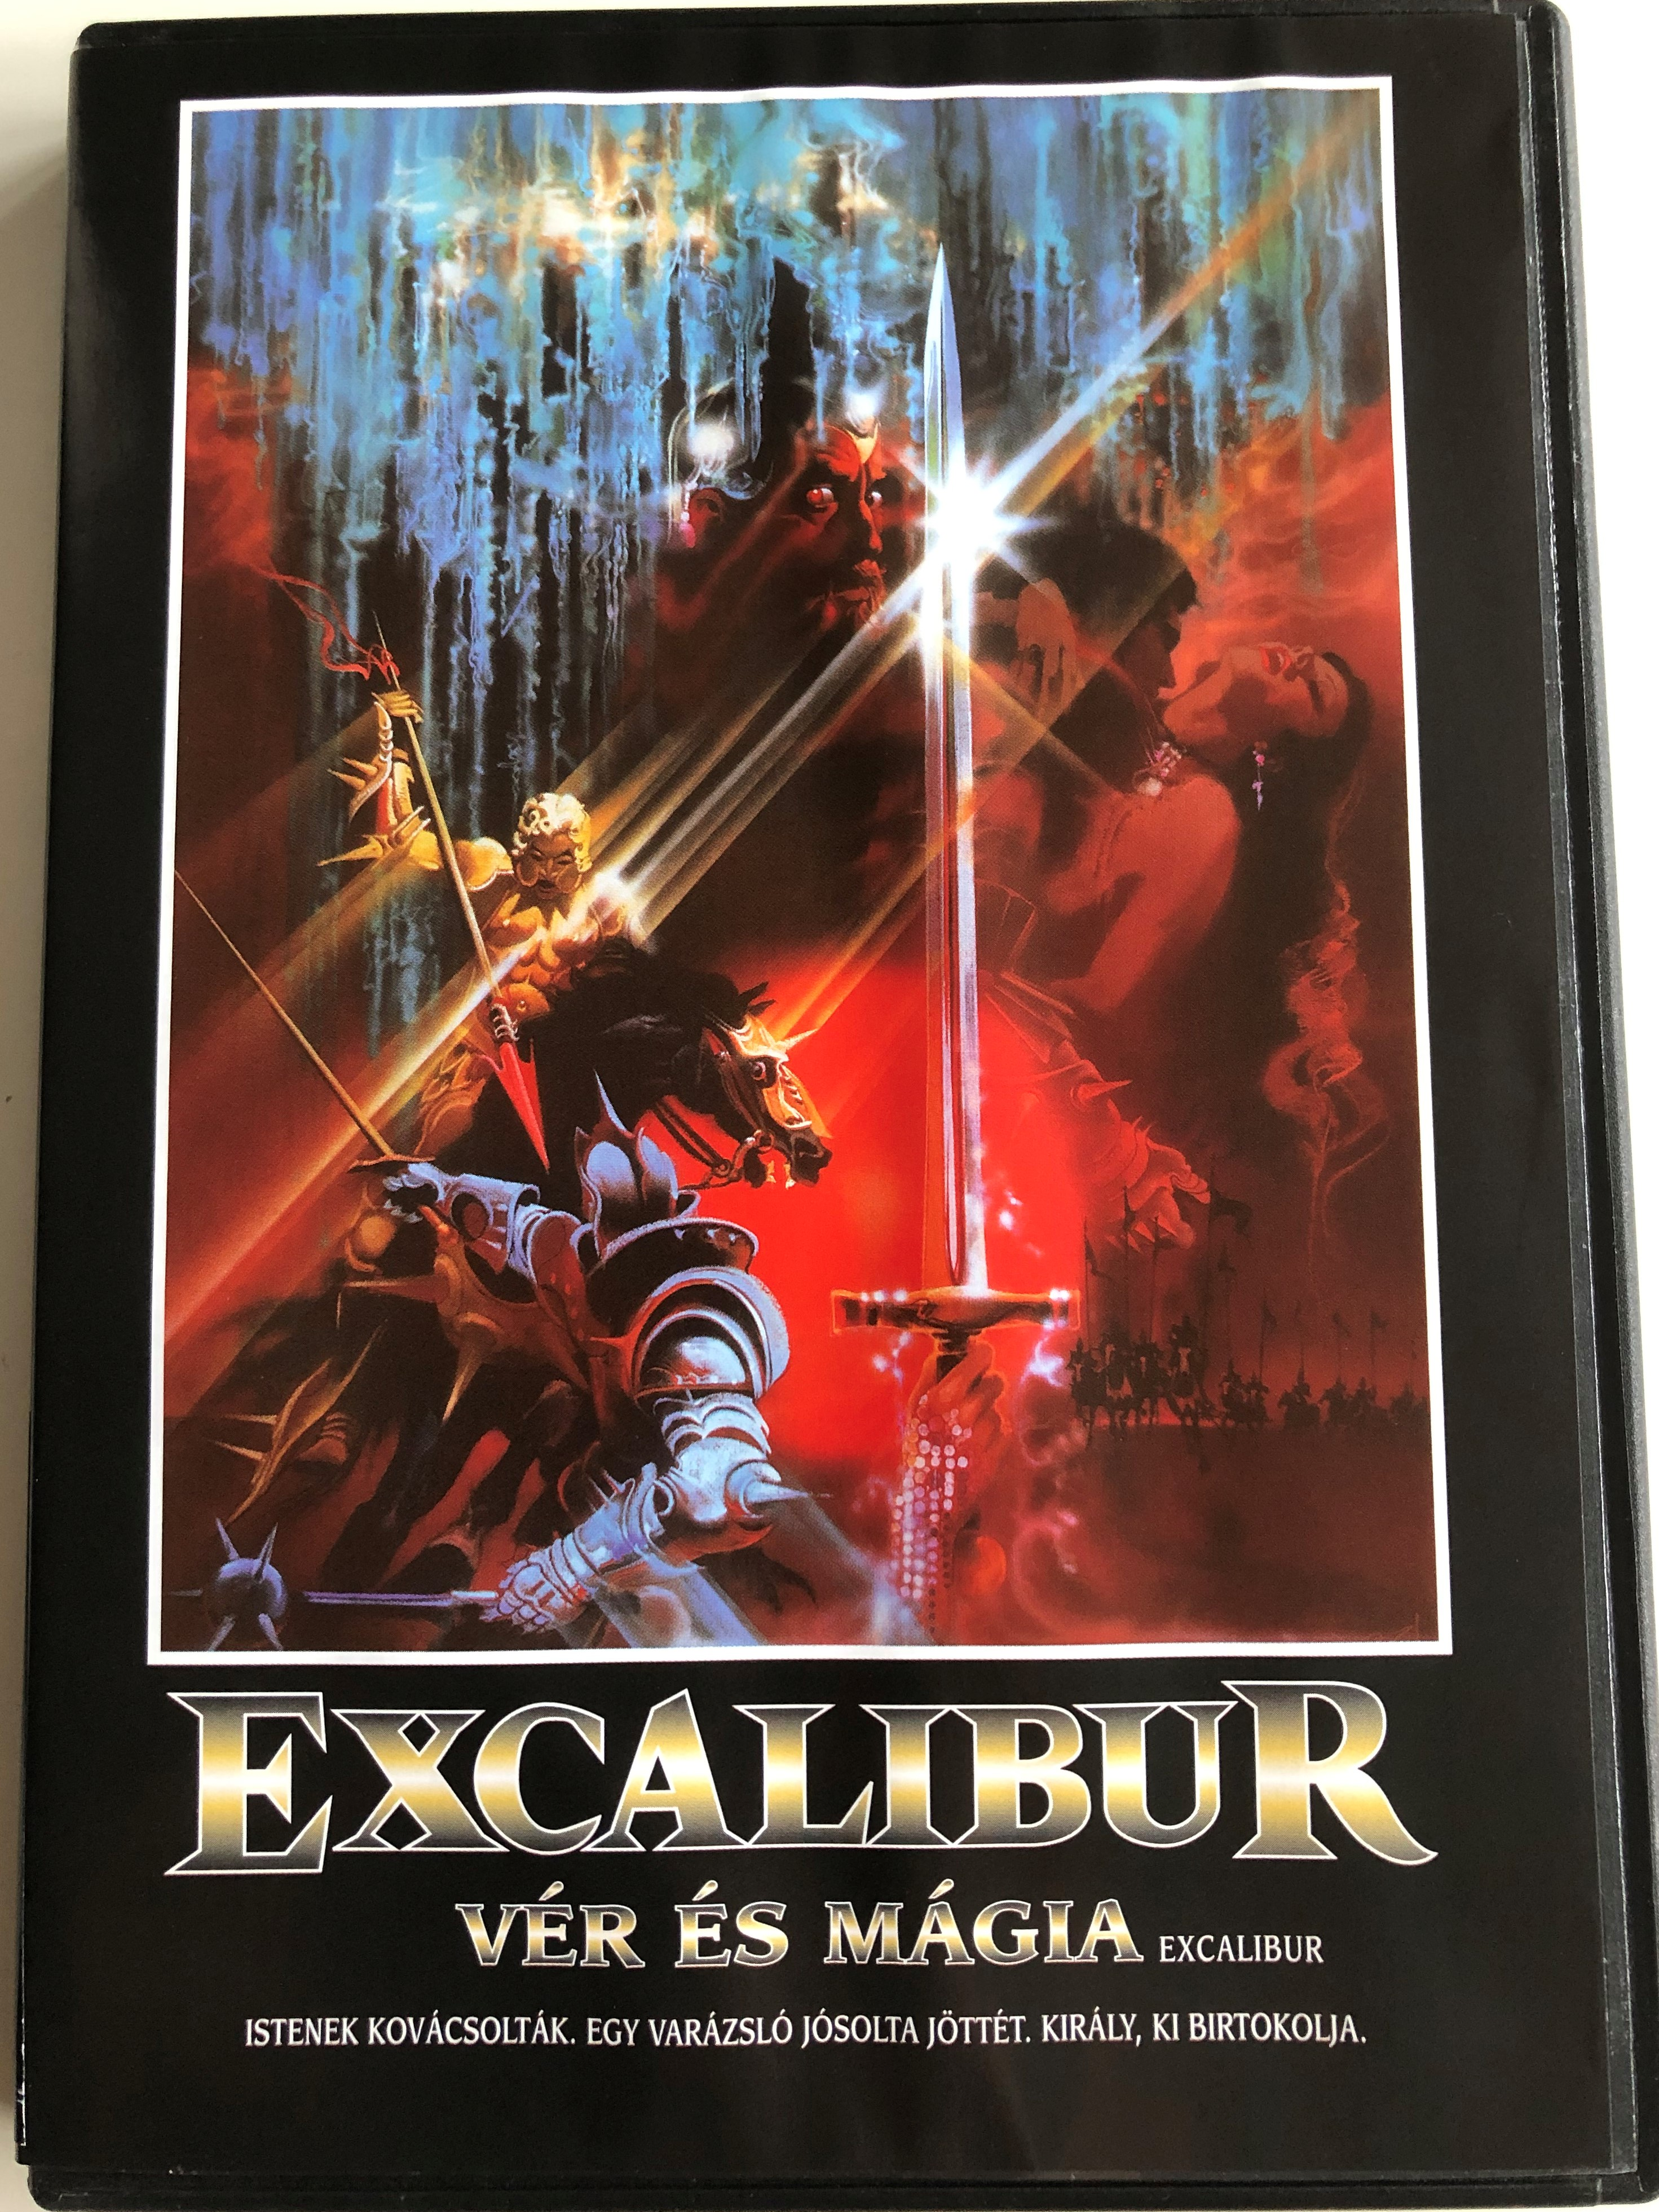 excalibur-dvd-1981-excalibur-v-r-s-m-gia-directed-by-john-boorman-1.jpg